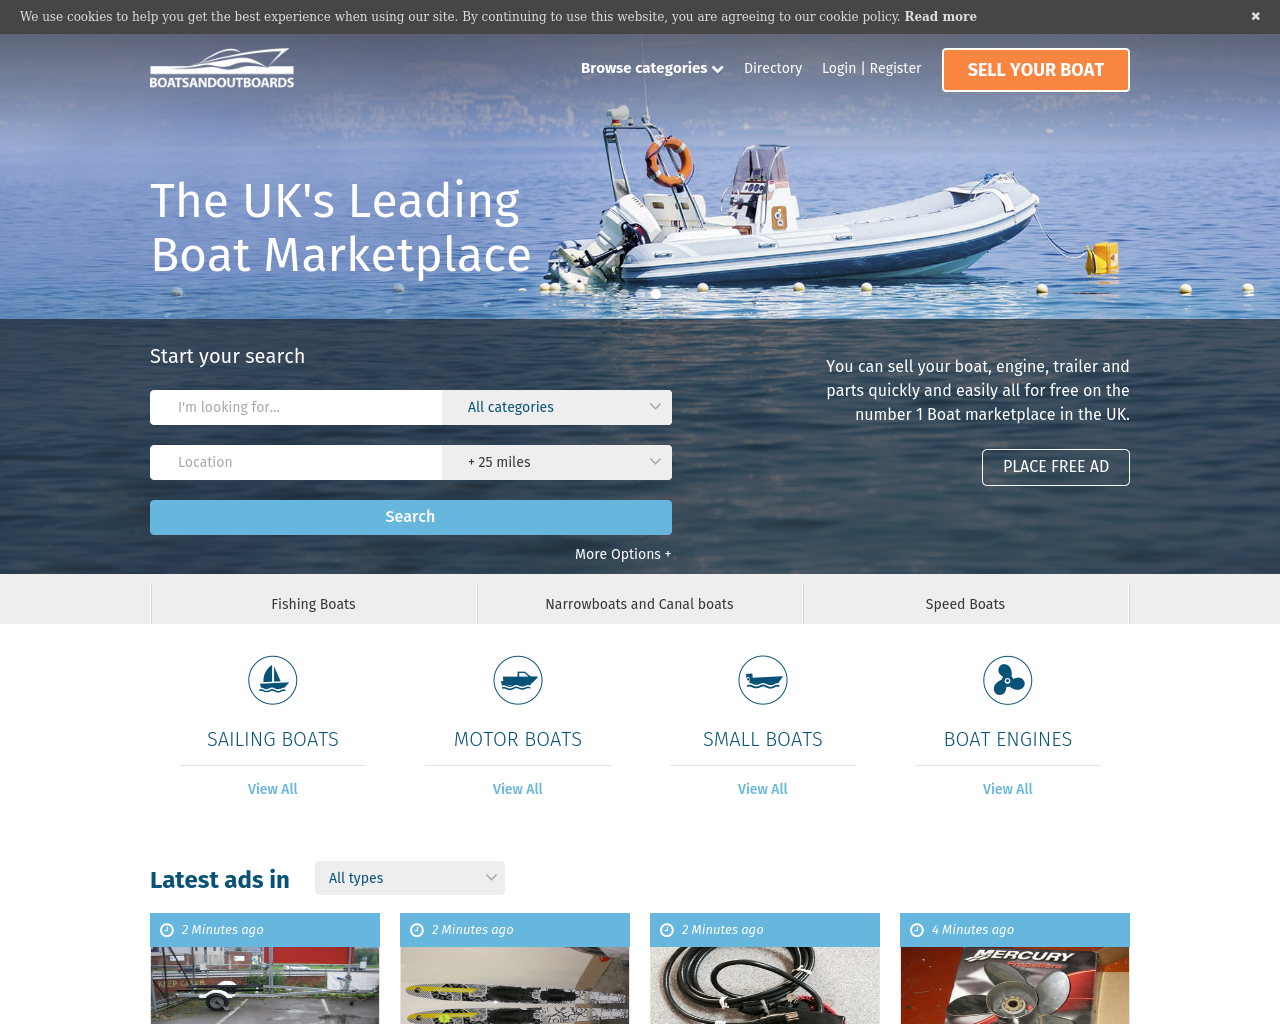 Boats-And-Outboards-Advertising-Reviews-Pricing